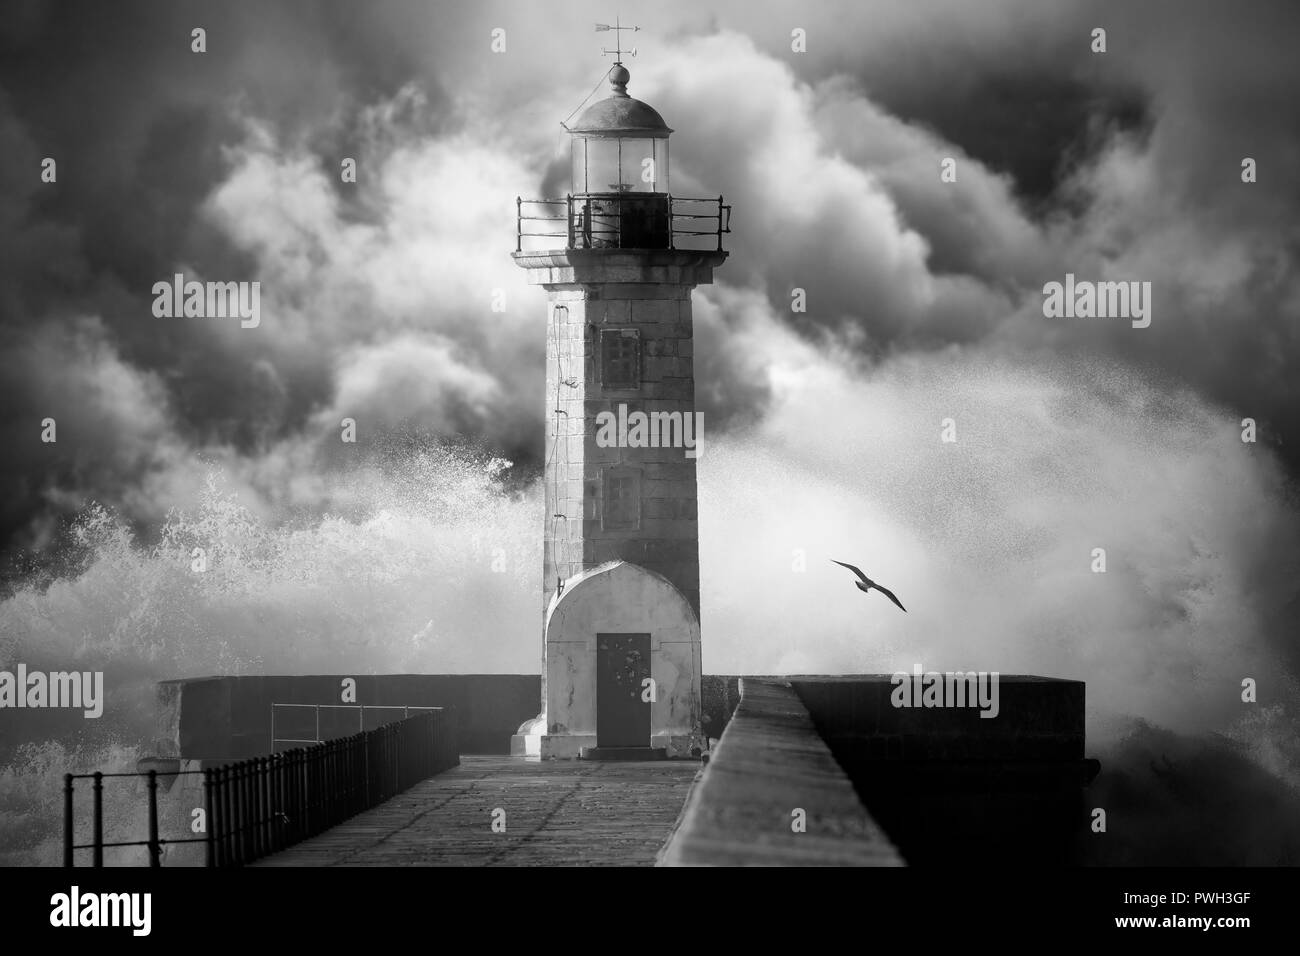 Old lighthouse against an enhanced cloudy stormy sky. Converted black and white. Added digital noise. - Stock Image